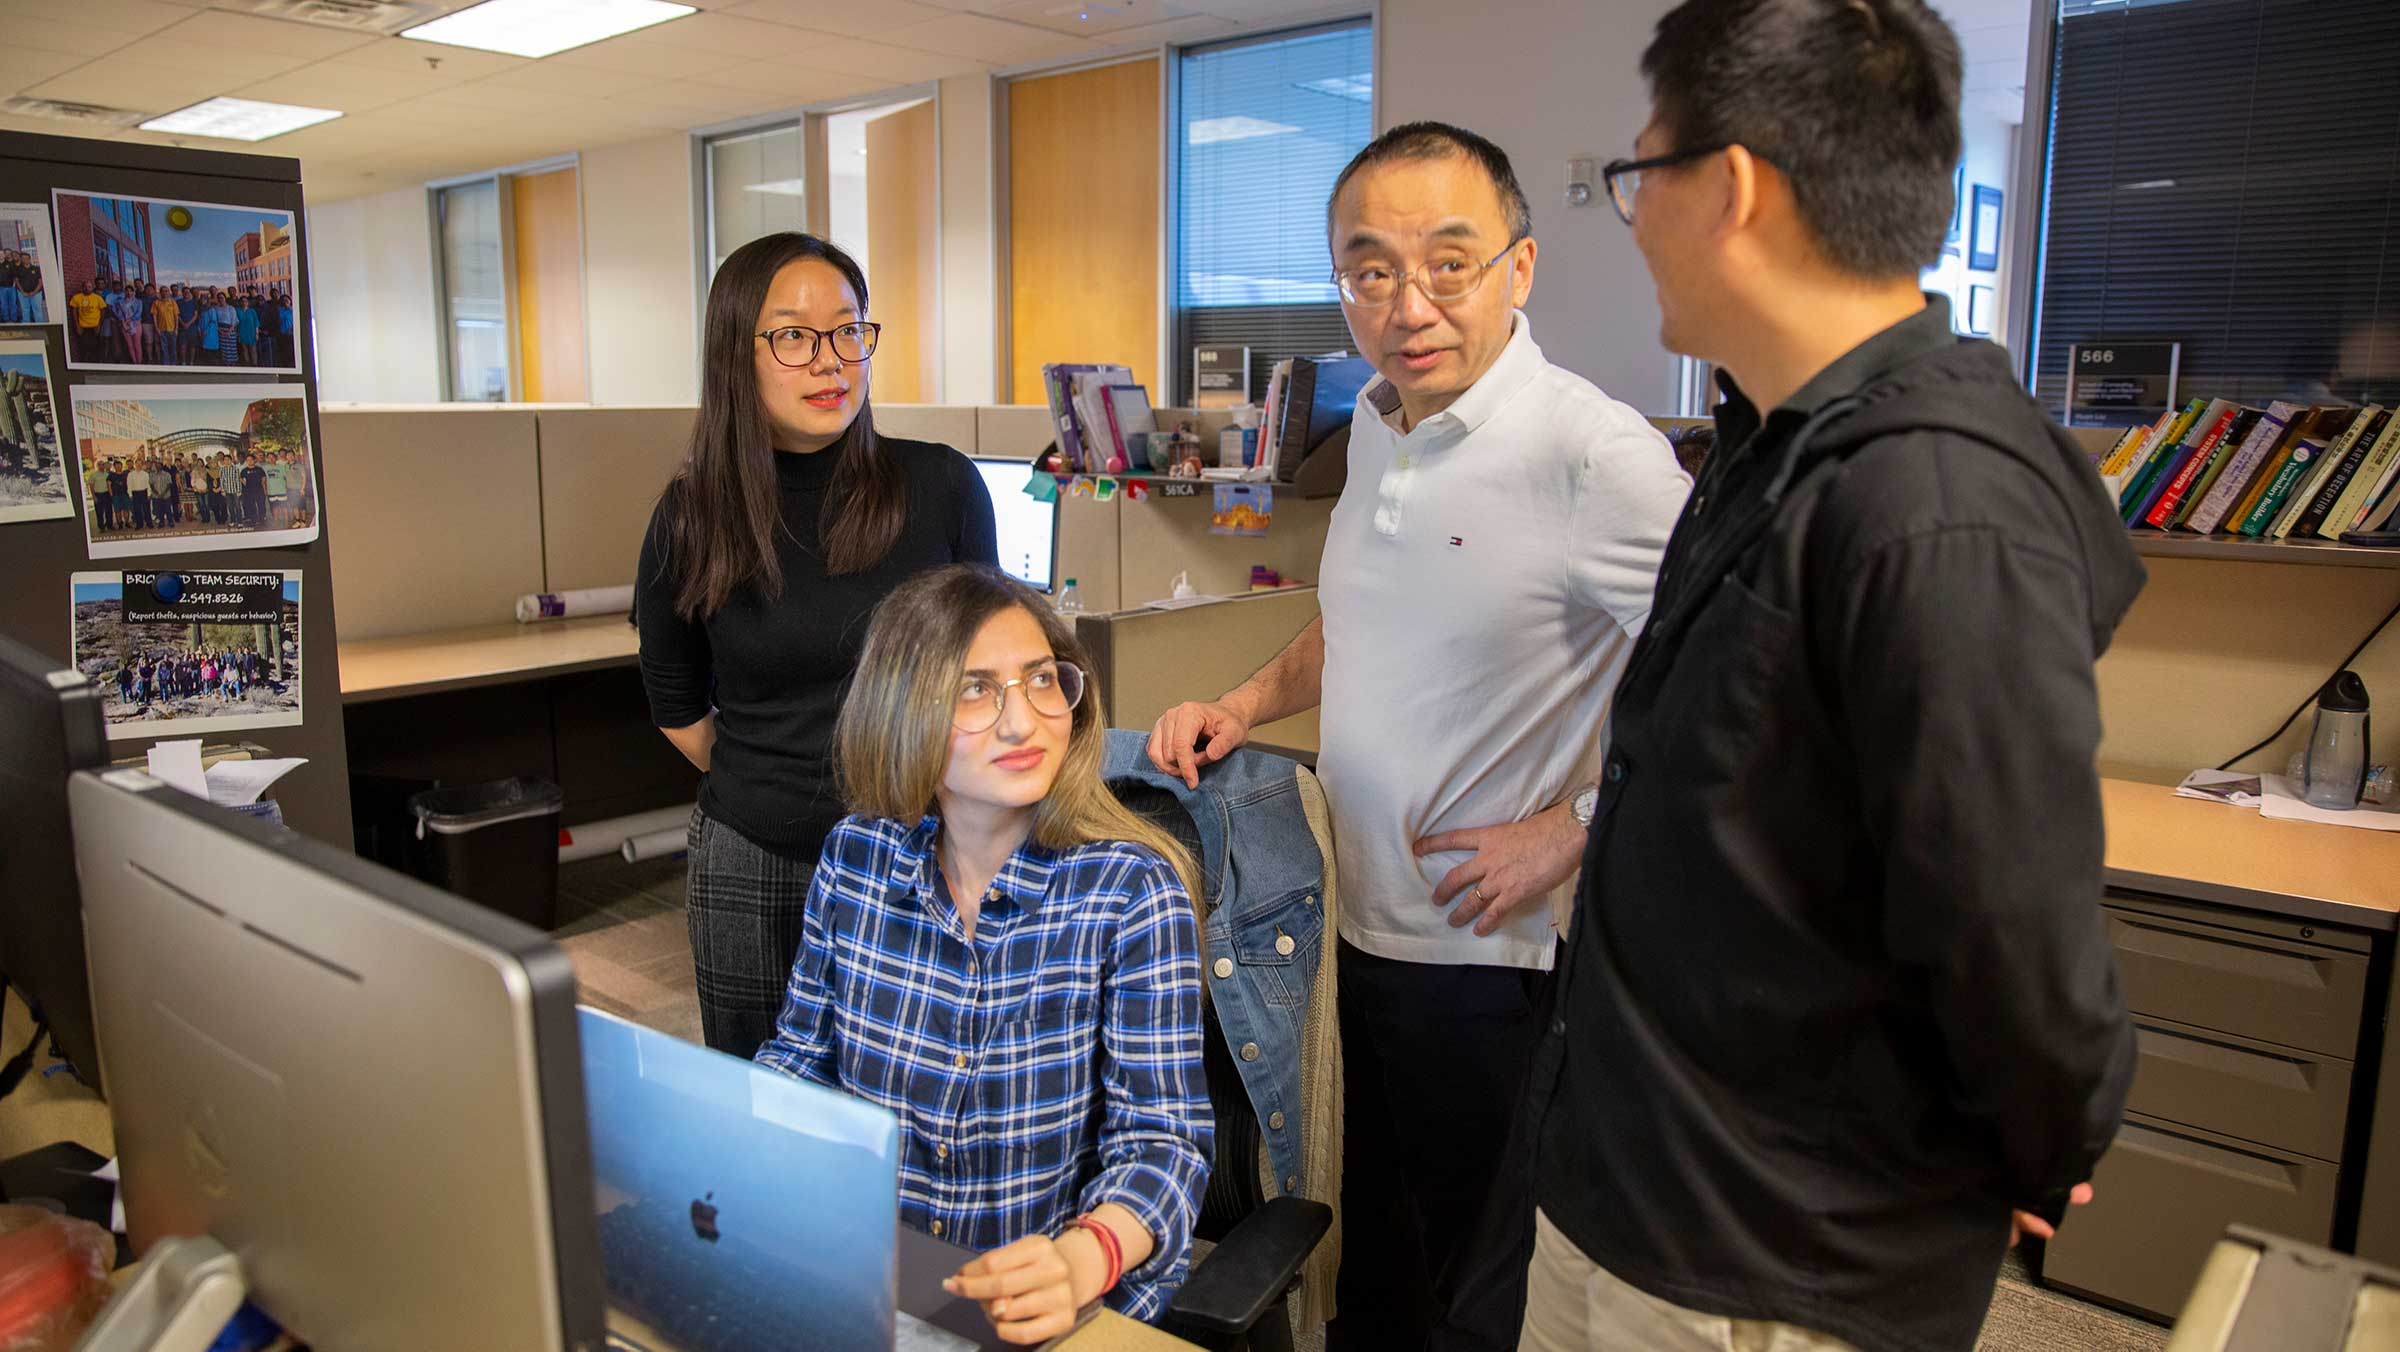 A faculty memeber stands at a desk with three students, discussing data on the computer screen